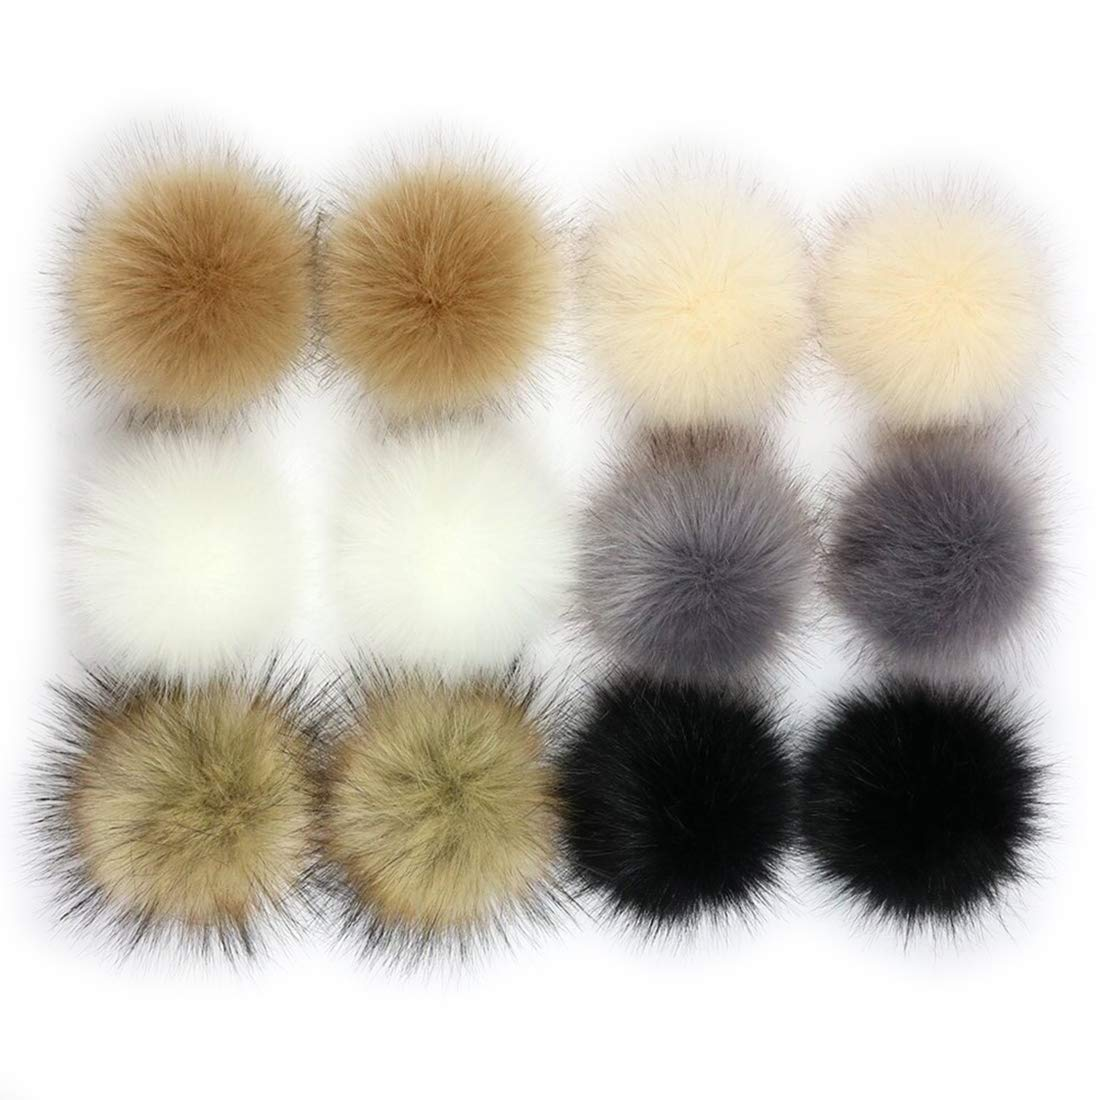 Tosnail 12 Pack Faux Fur Flurry Pom Poms Ball Knitting Crafting Accessories for Hat, Shoes, Scarves, Bag Charms - Hot Sale Color Assortment